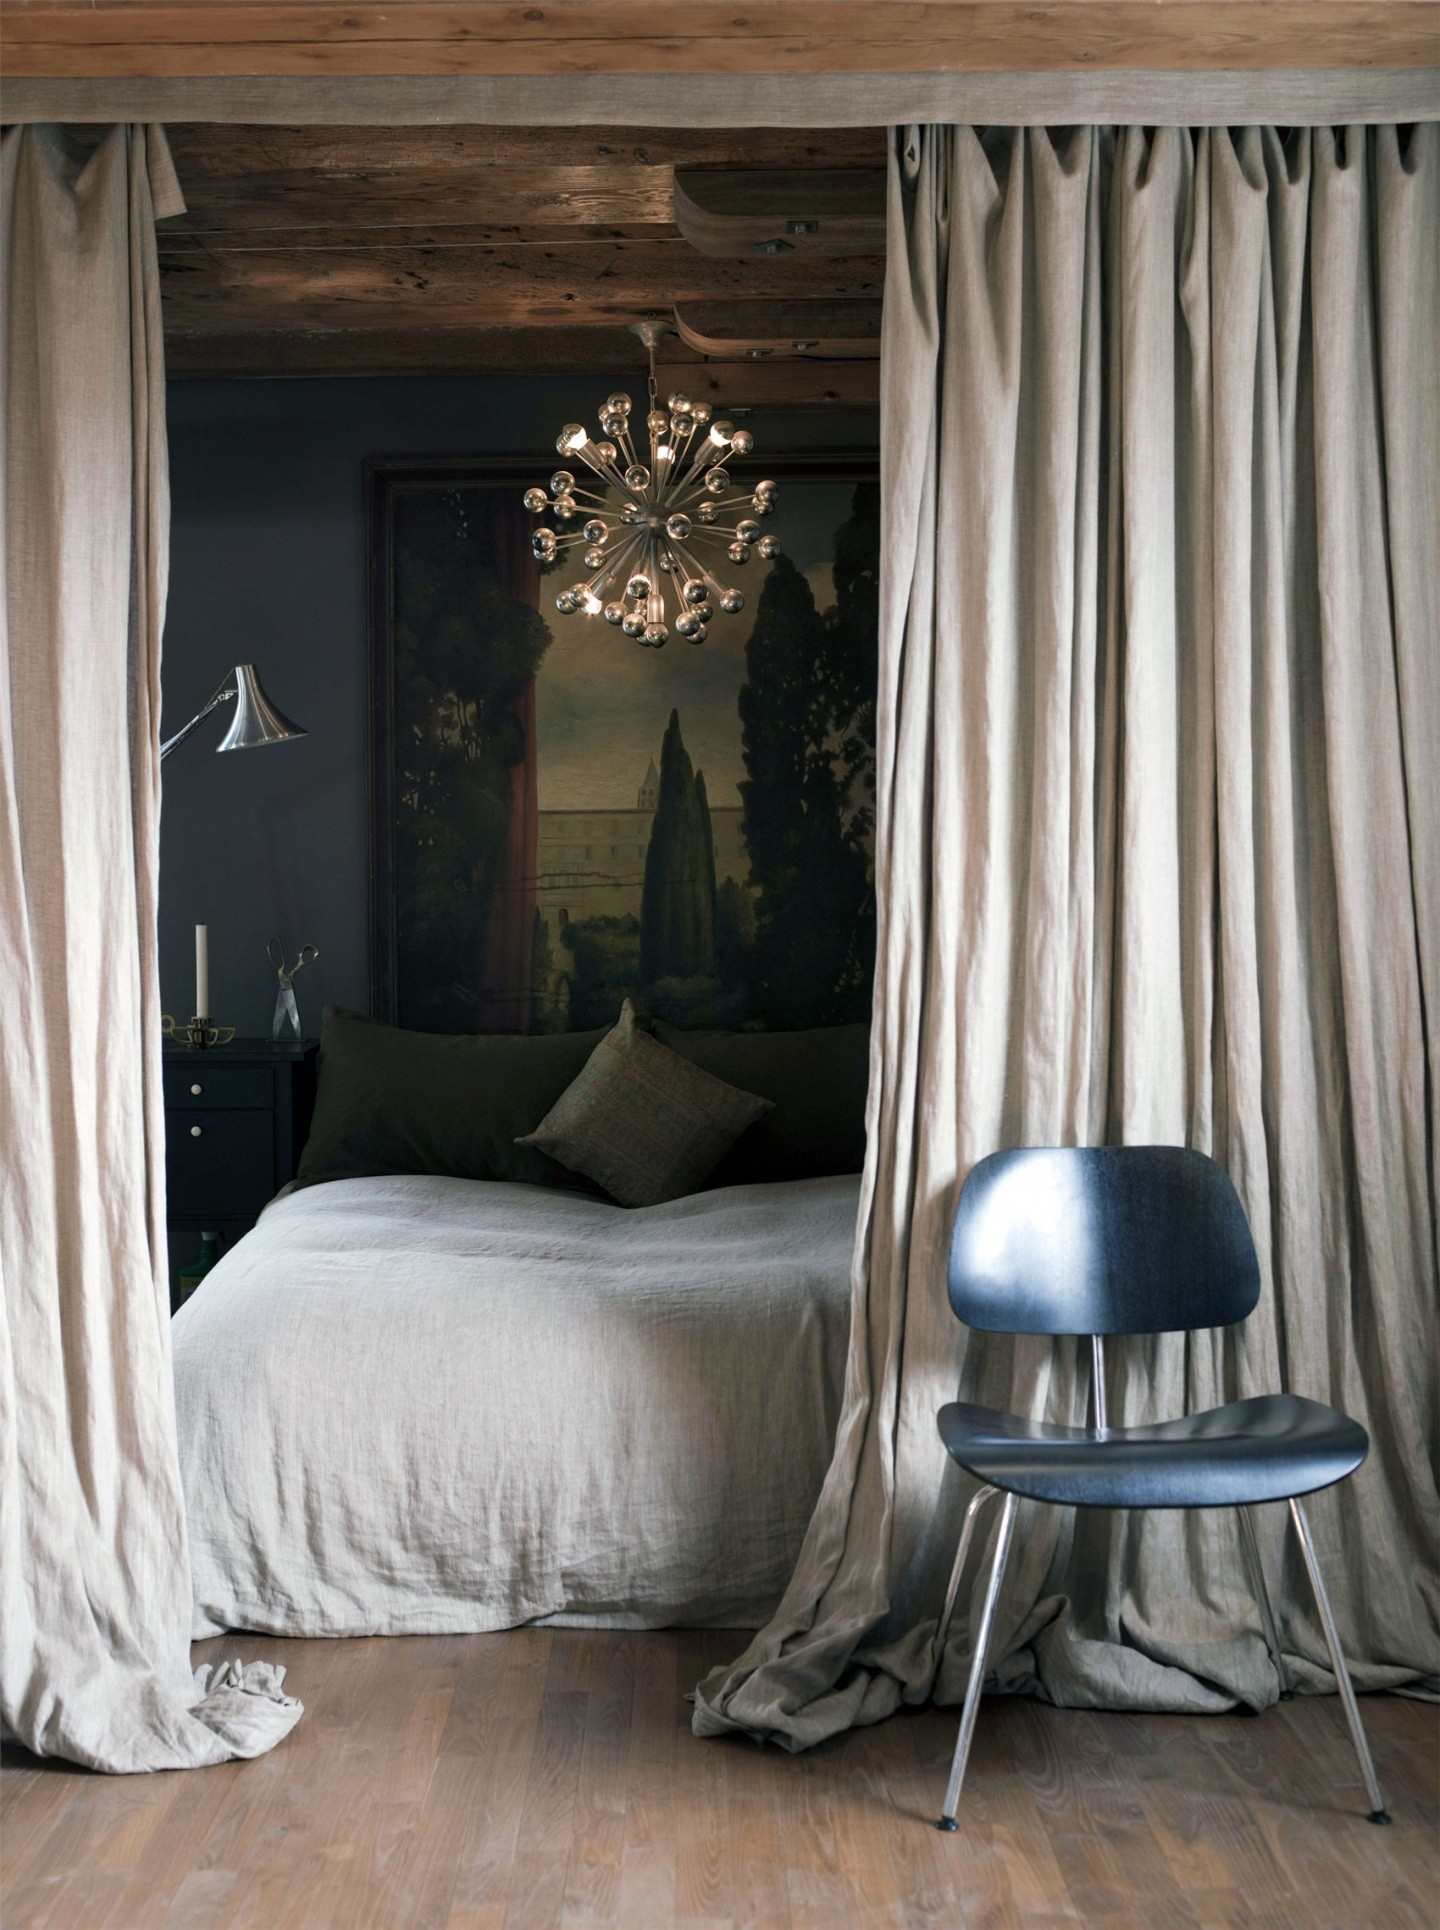 interior-light-grey-bedroom-divider-curtains-combined-small-chandelier-simple-bedroom-divider-curtains-beautifies-each-interior-design-easily